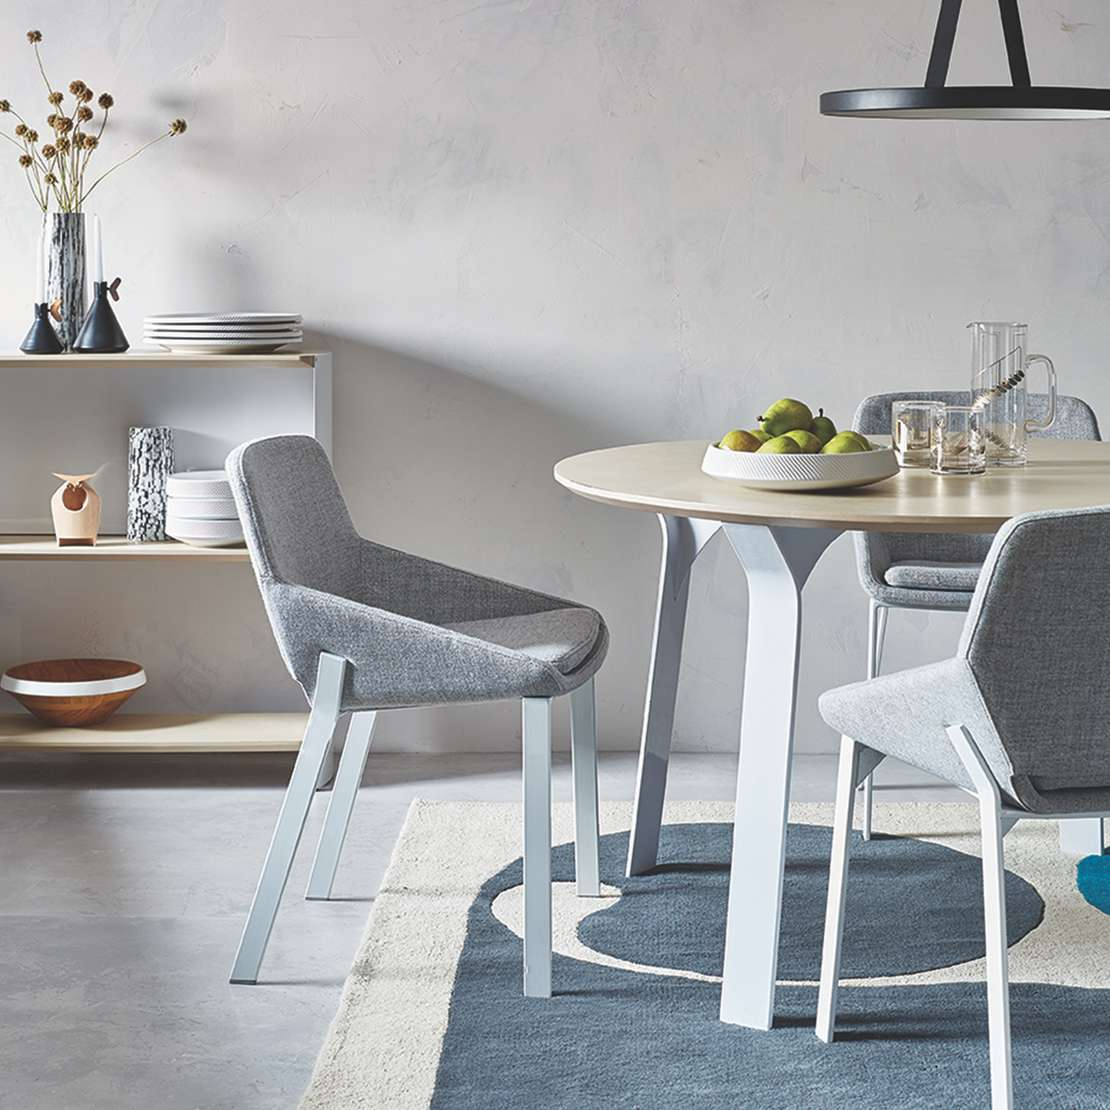 Coolly Modern Formal Dining Room Sets To Consider Getting: TargetStyle : Target